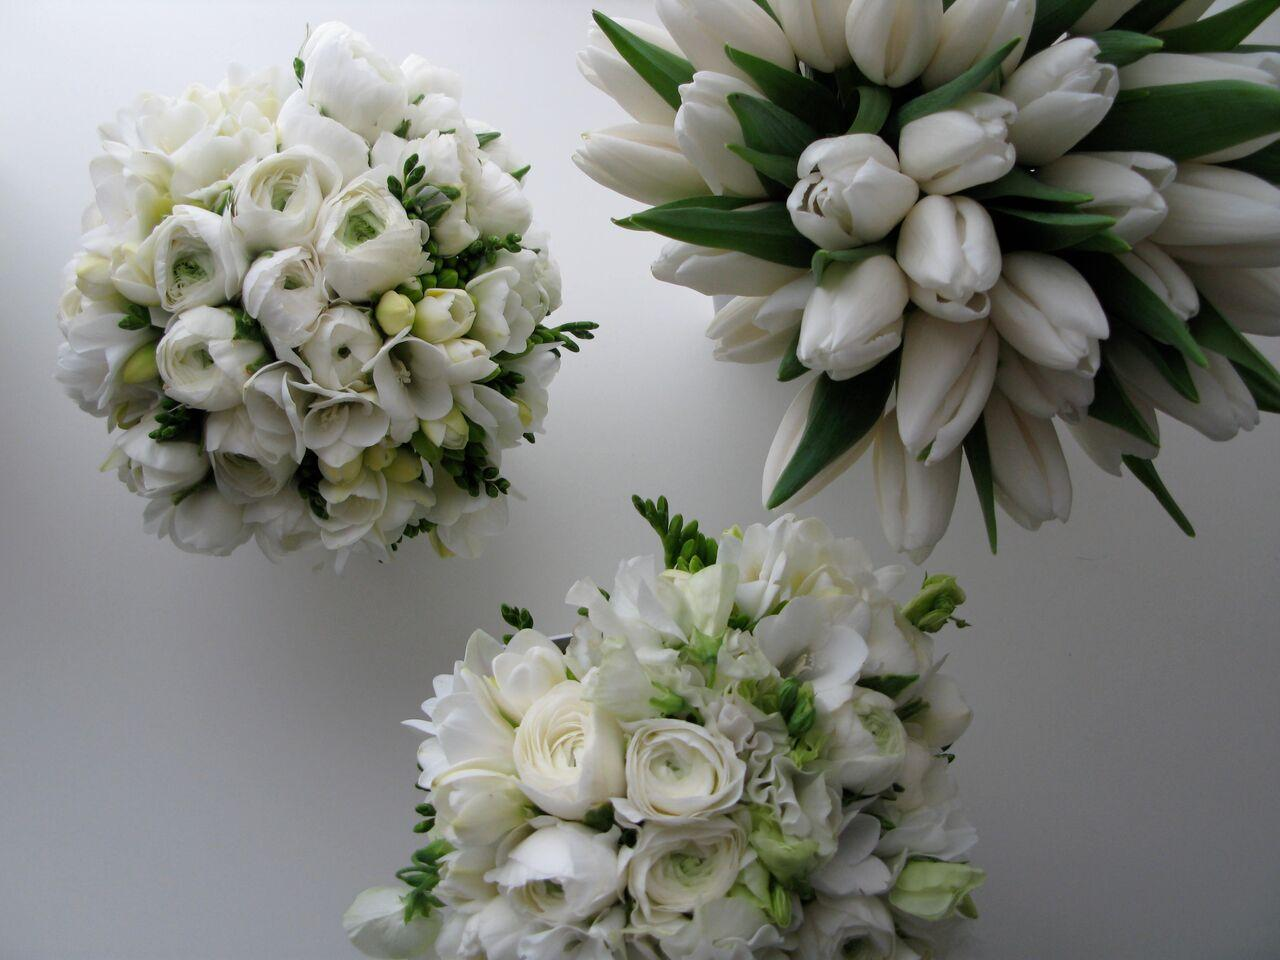 K'Mich Weddings - wedding planning - white tulip, white roses - decoration